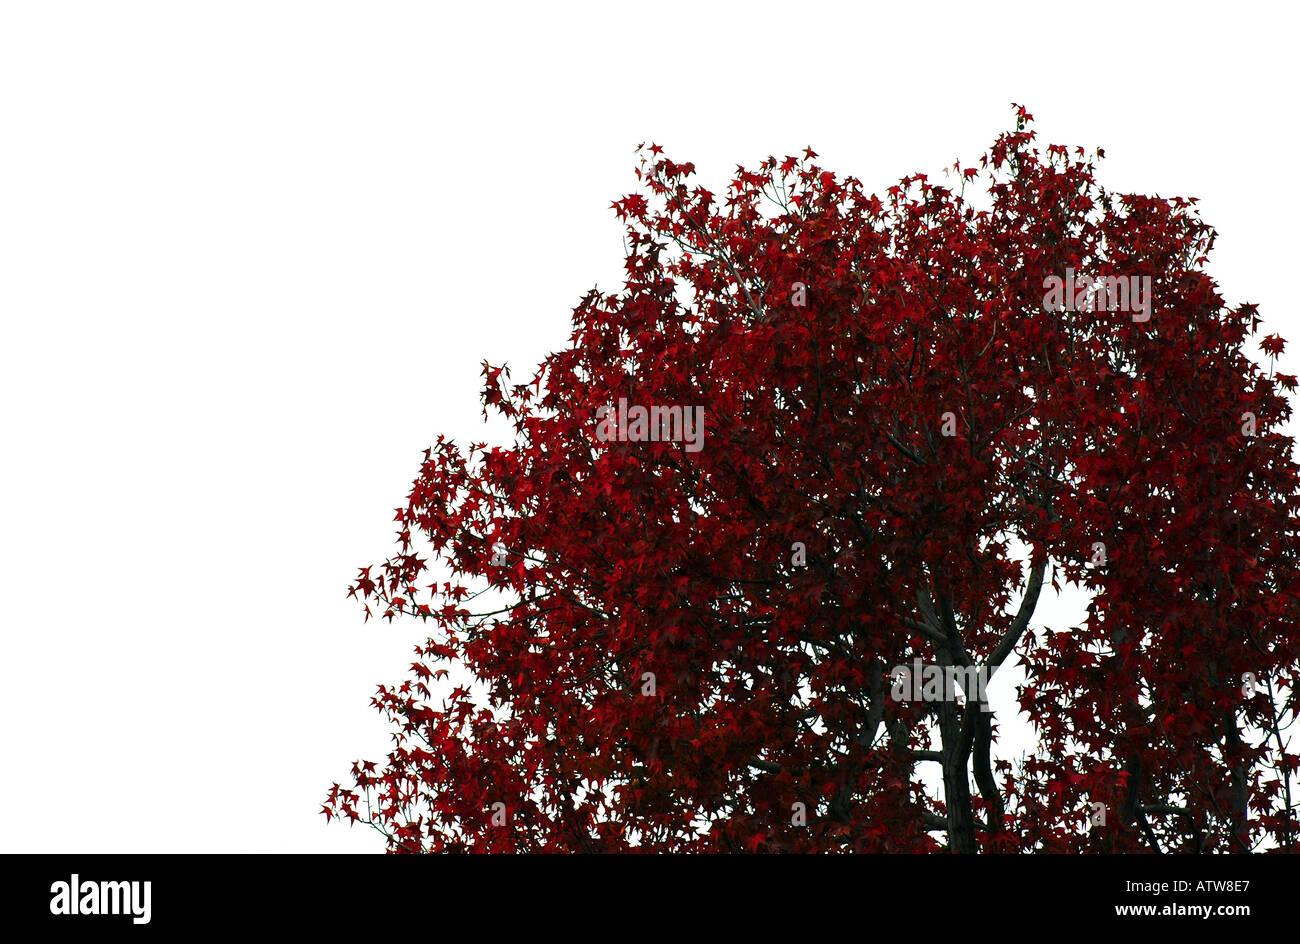 Late Autumn Crimson Leaves Black Tree Branches Against A Stark